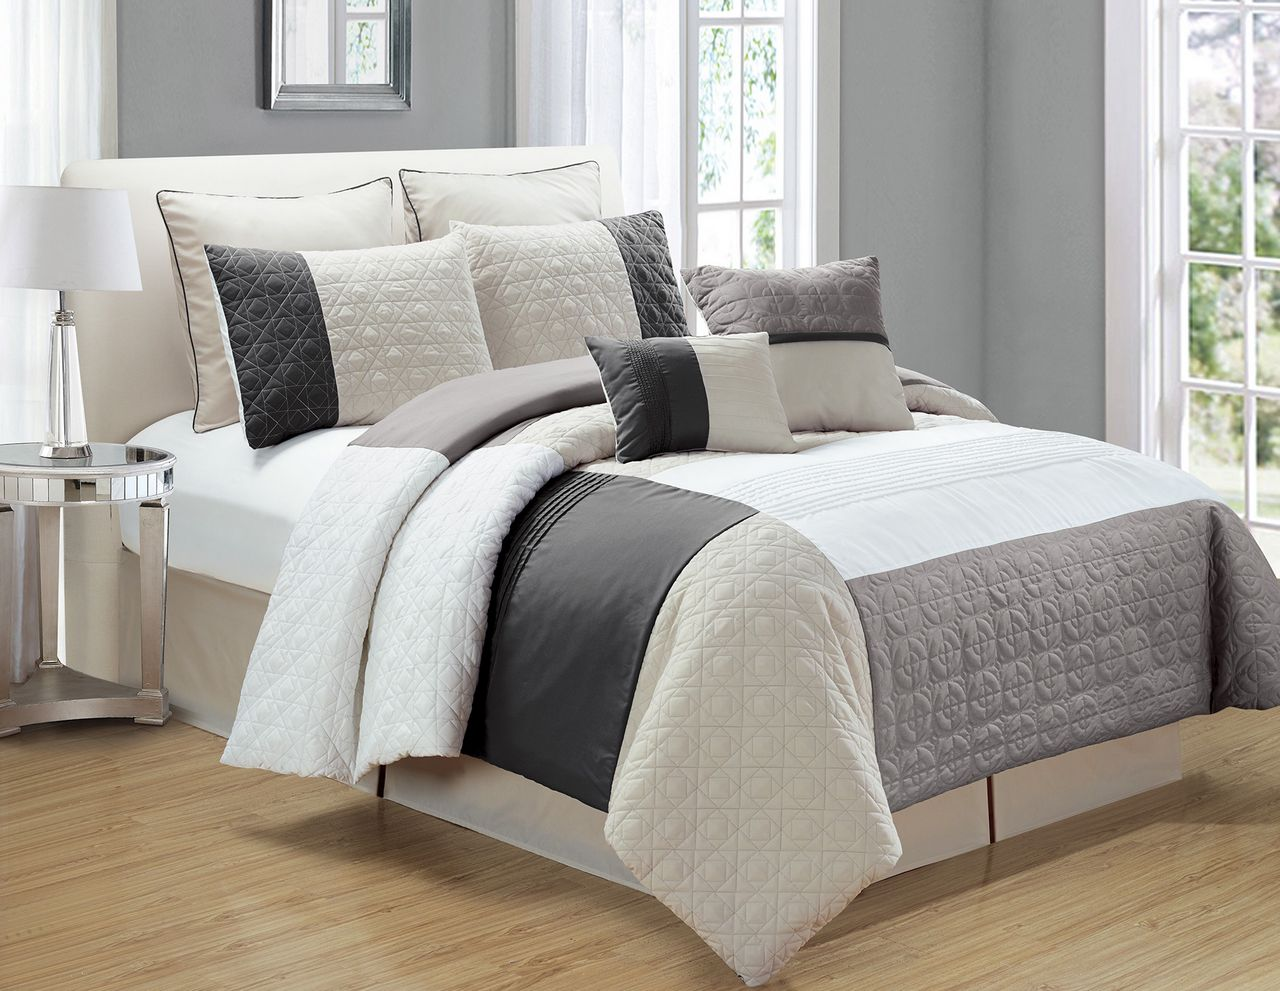 comforter cozy plush alternative aurora bedding park shipping down extra free madison set warm today bath and overstock product ultra ivory